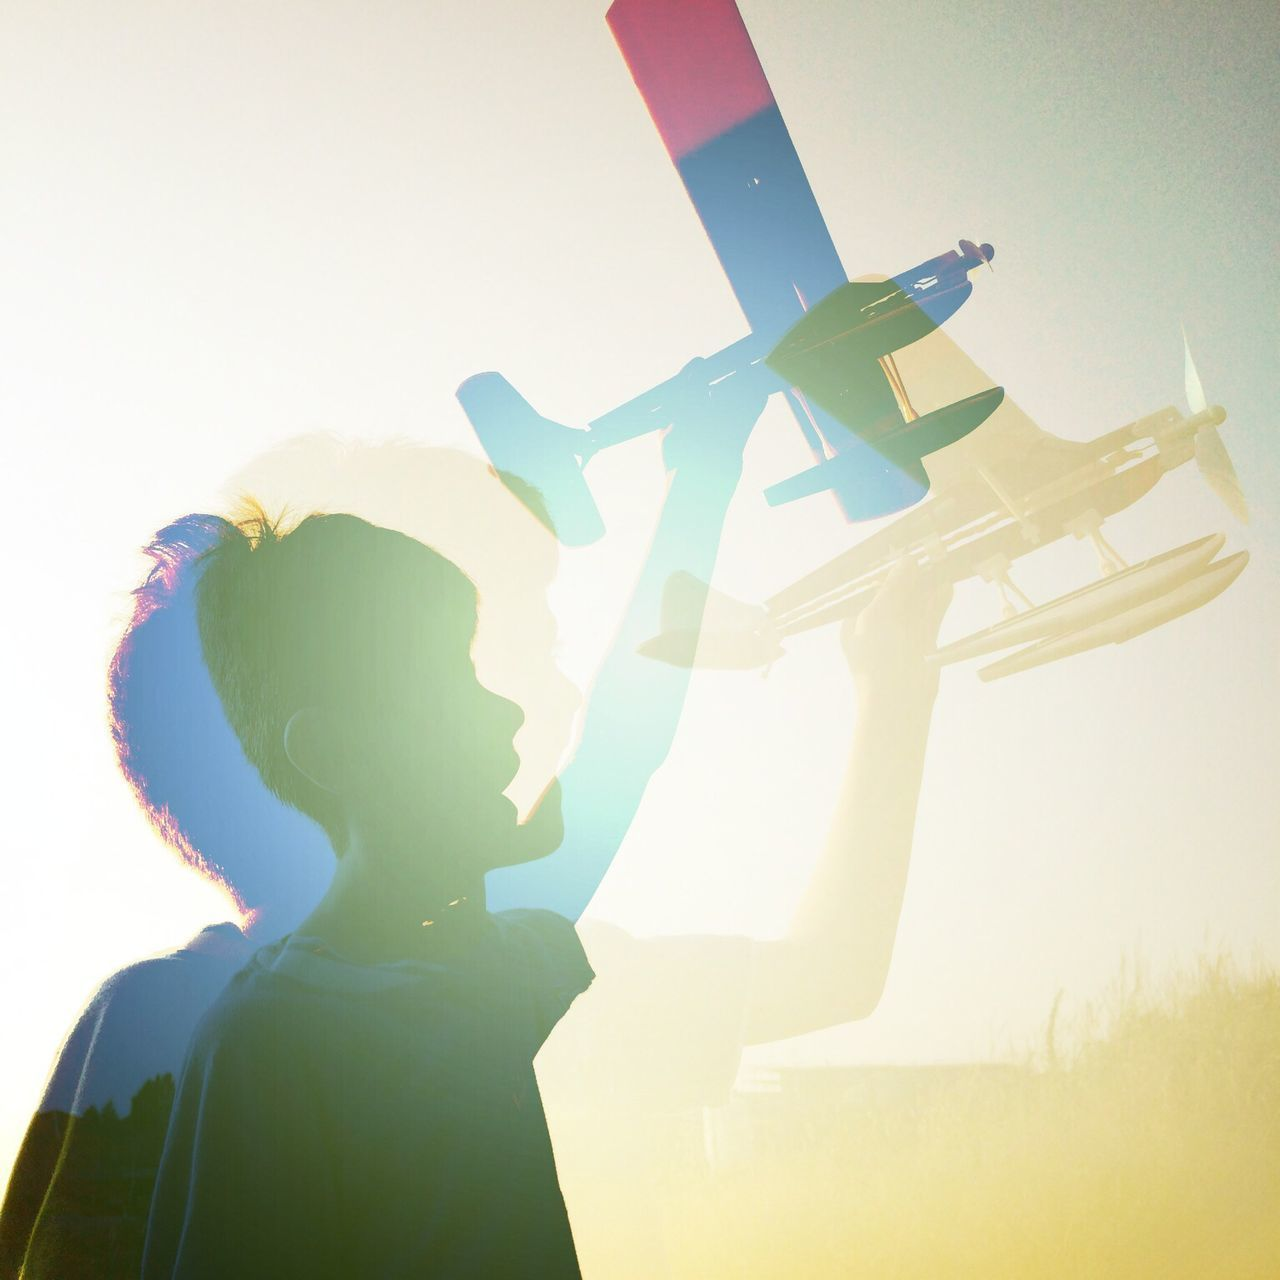 Digital composite image of boy holding airplane